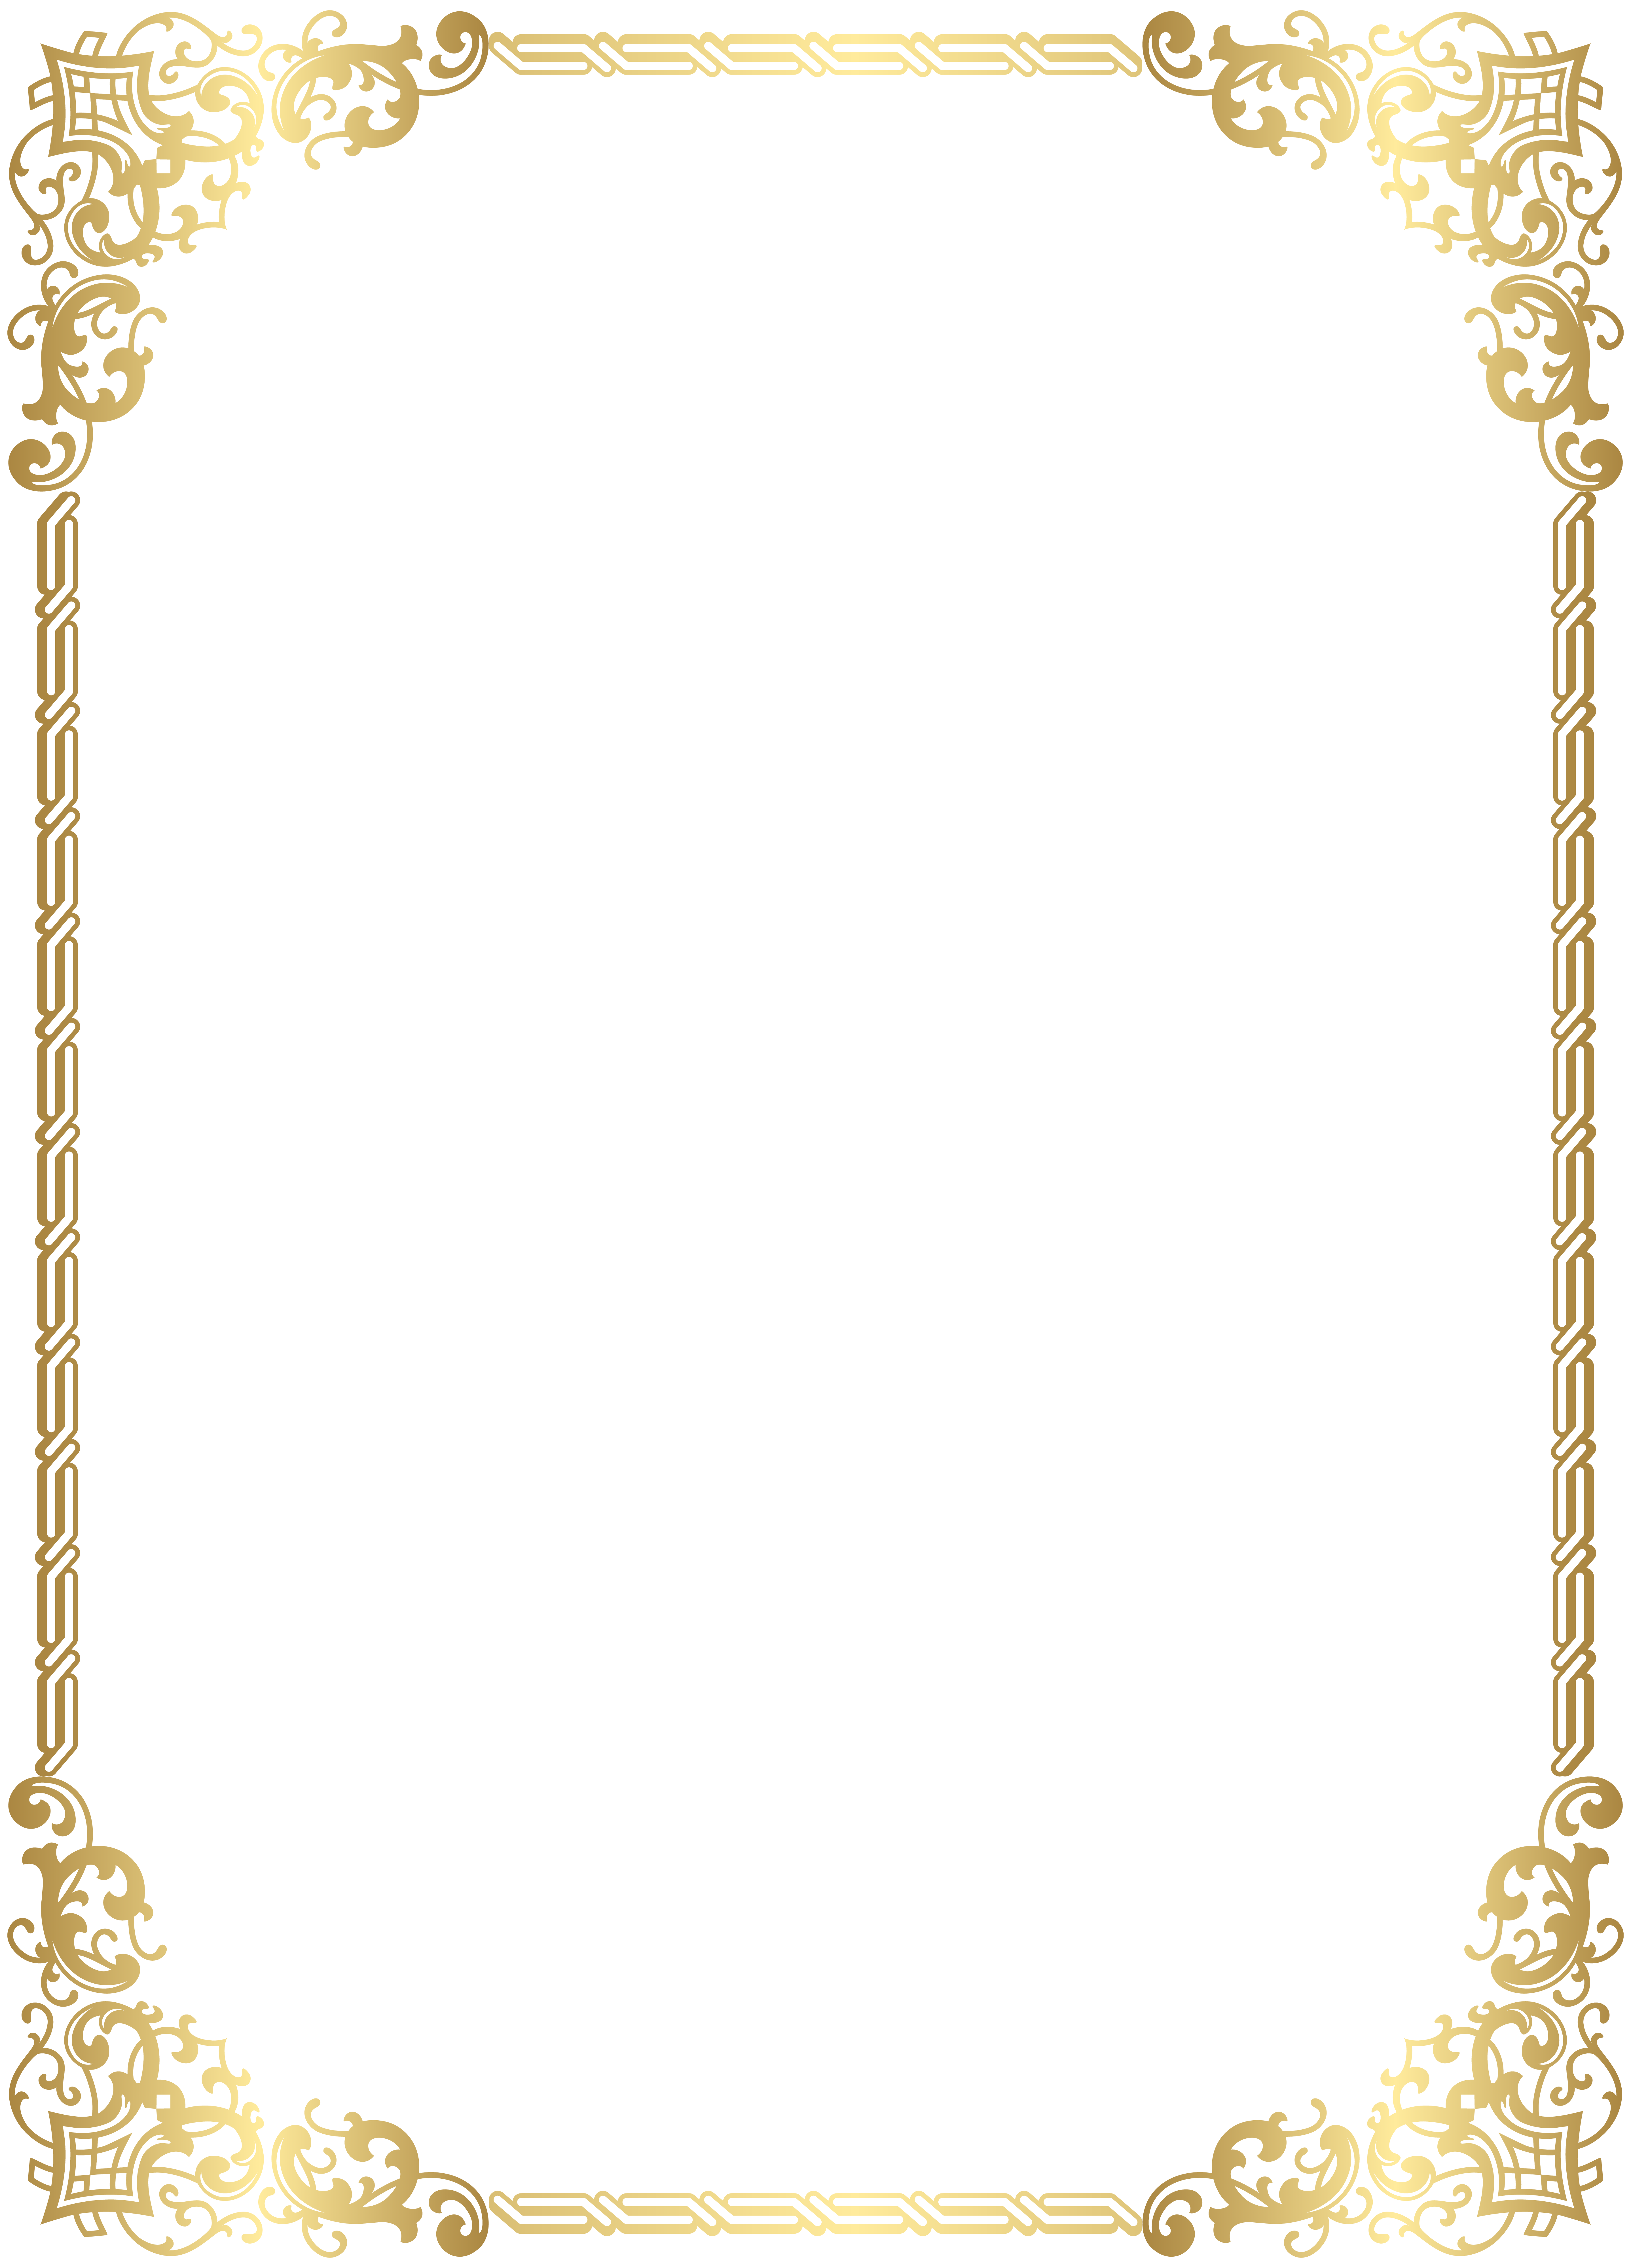 image free stock Gold border frame transparent. Free clipart backgrounds and borders.